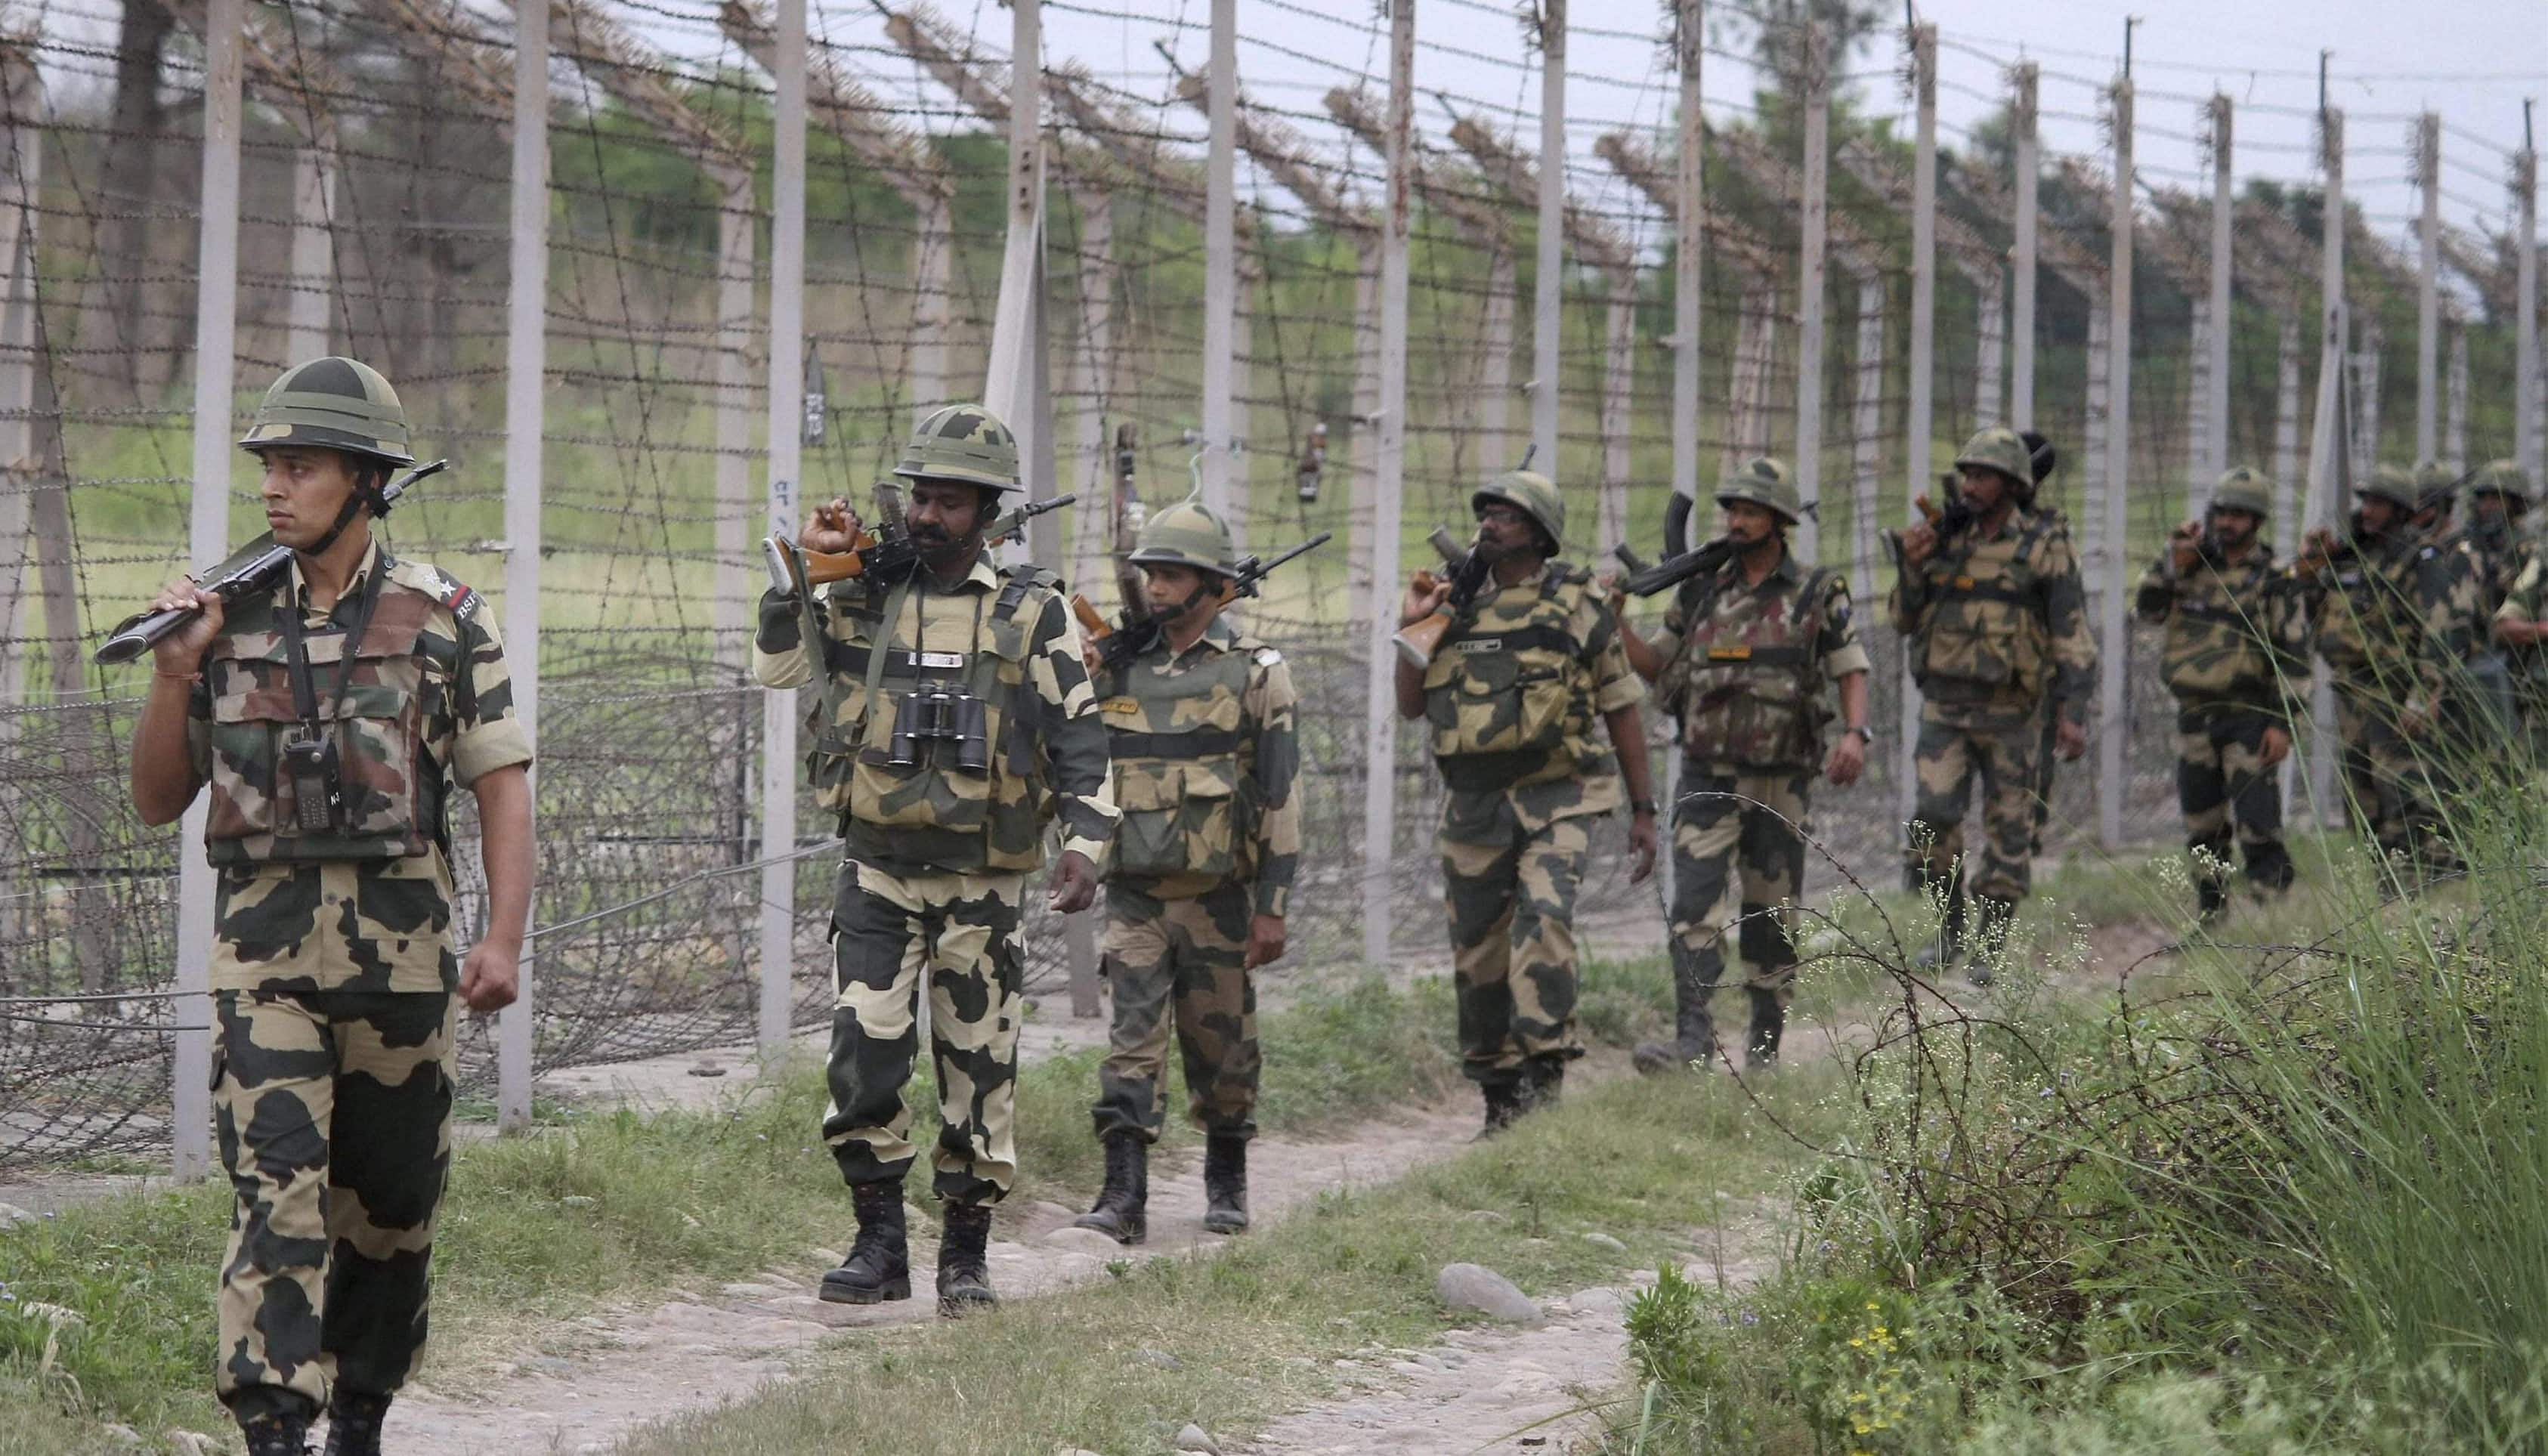 History of Indian borders to be written, Defence Minister Rajnath Singh gives nod